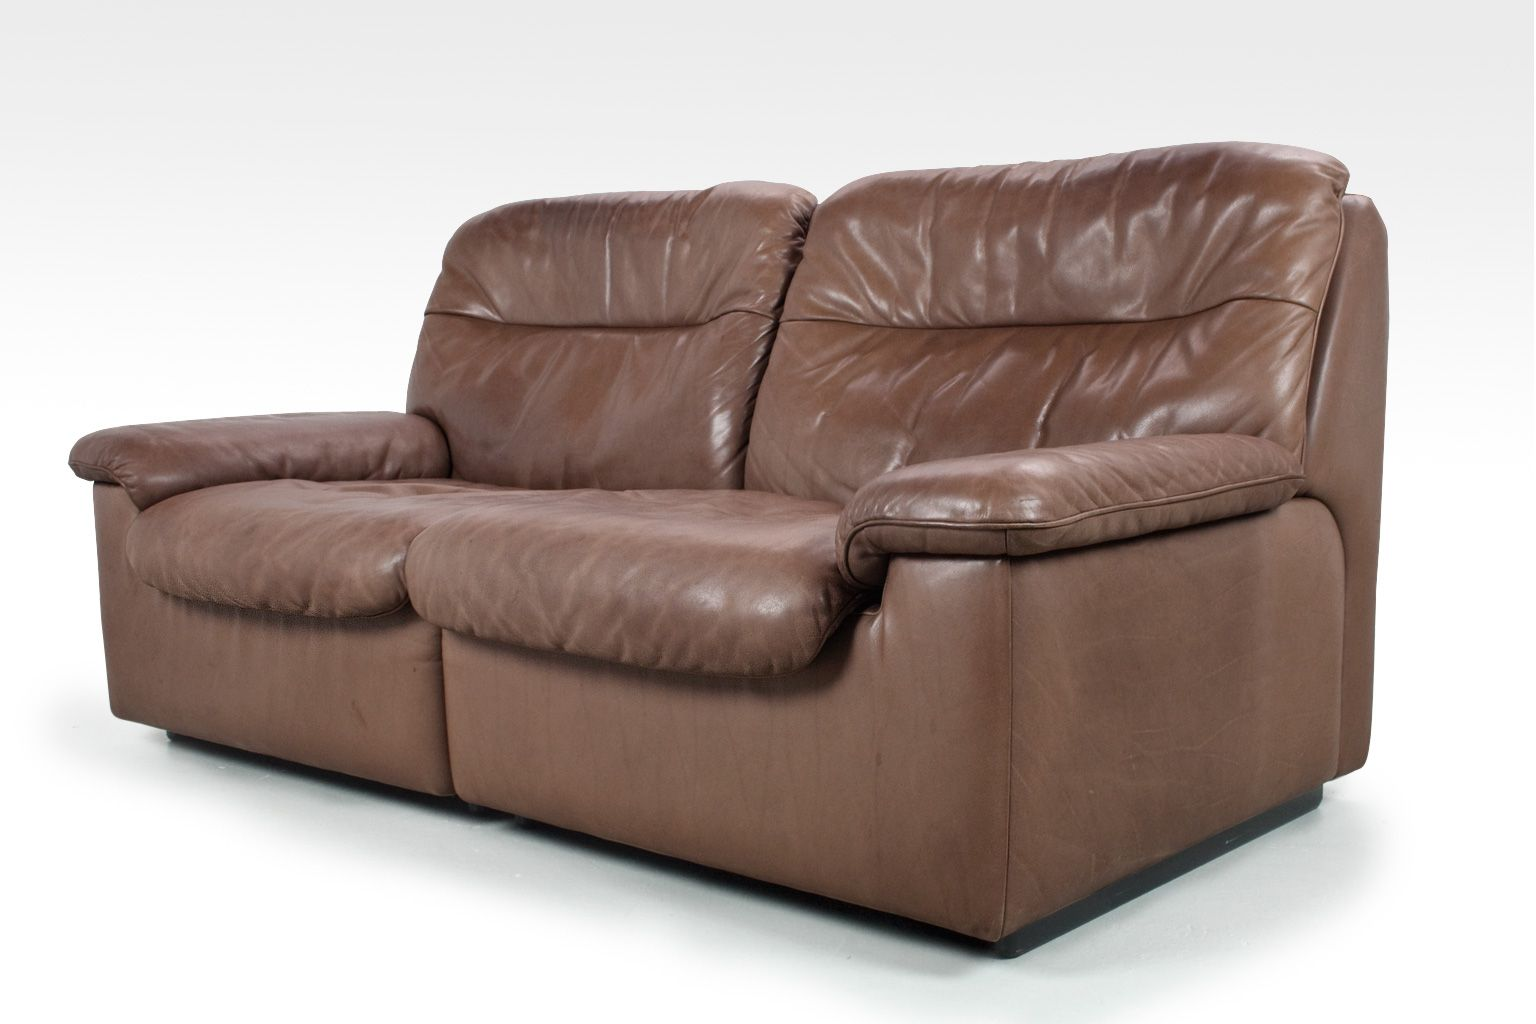 ds66 2 seater sofa from de sede 1970s for sale at pamono. Black Bedroom Furniture Sets. Home Design Ideas